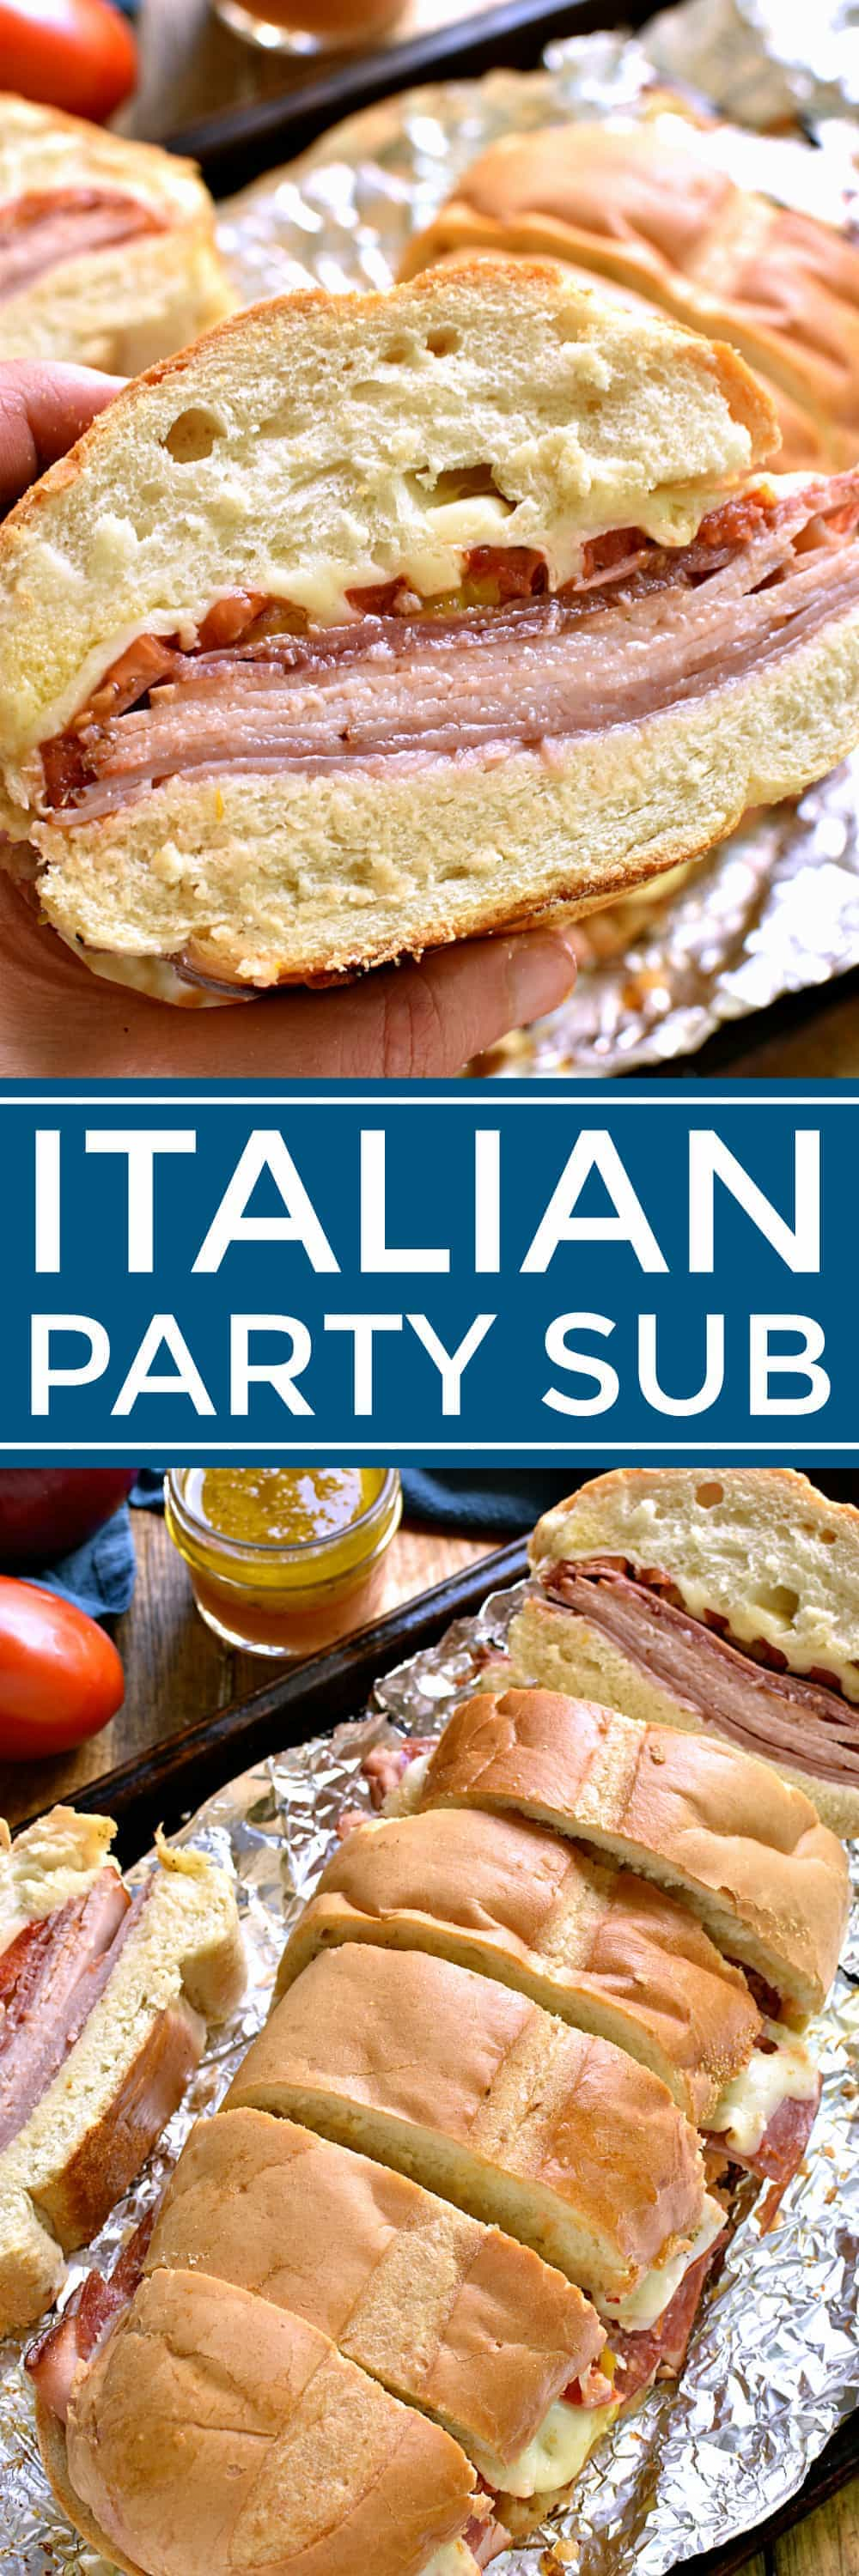 This Baked Italian Party Sub is perfect for feeding a crowd! Loaded with the delicious flavors of salami, turkey, ham, provolone, tomatoes, peppers, red onions, and homemade Italian vinaigrette, this sandwich is party-ready whenever you are....and guaranteed to make all your guests very happy!